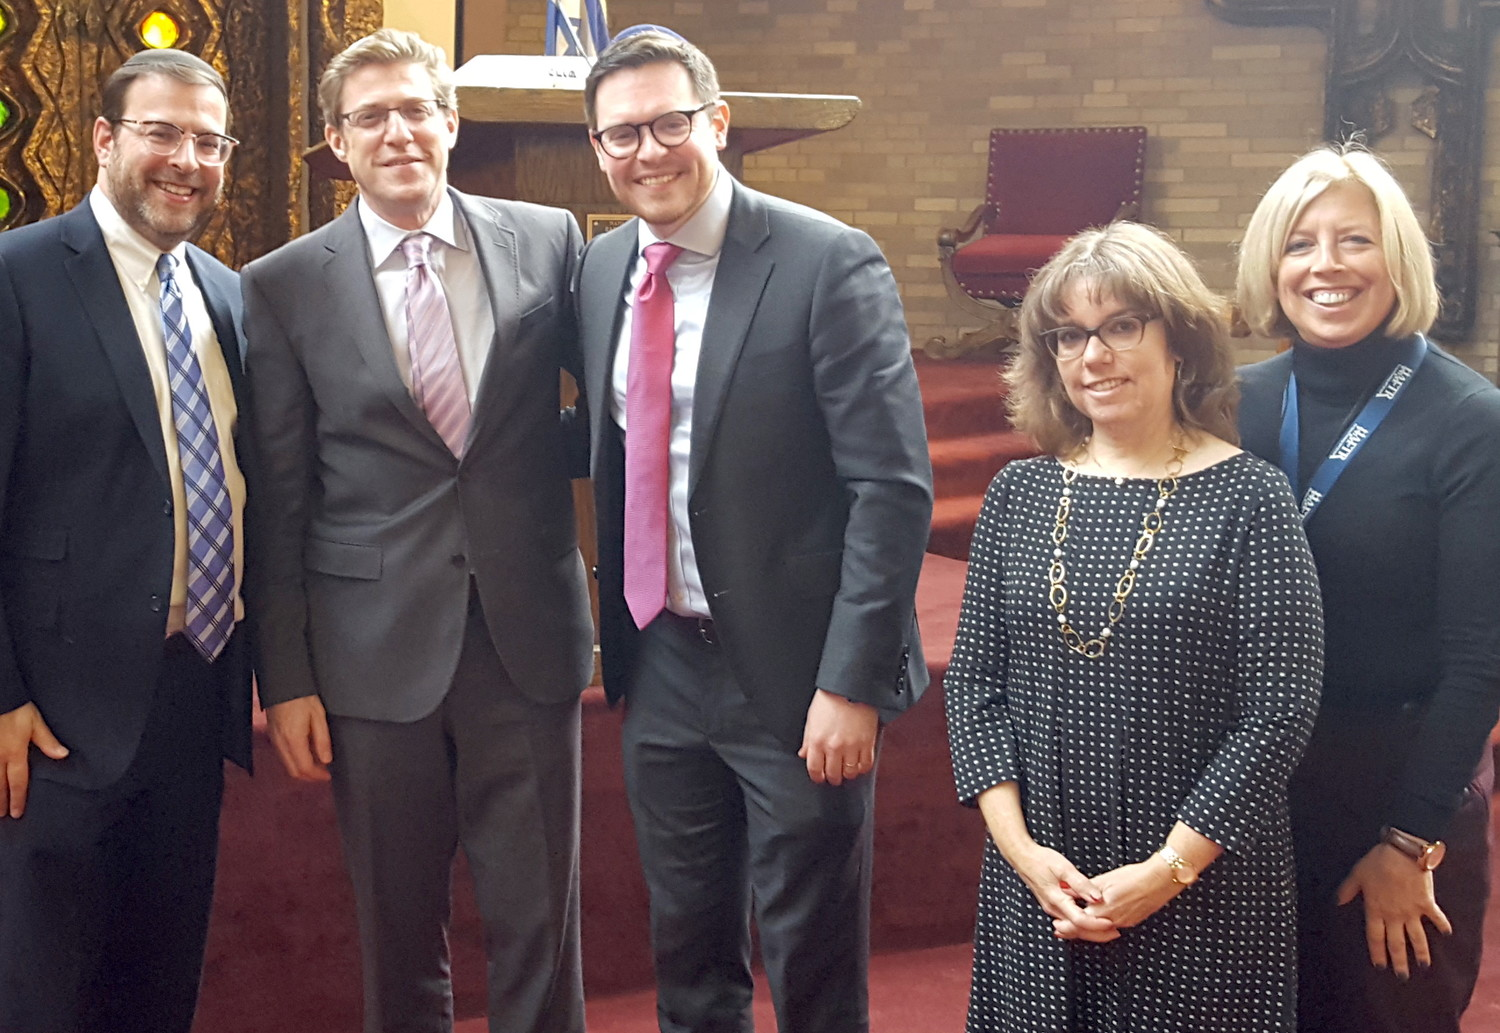 From left: Rabbi Dovid Khpchik of the Manhattan Jewish Experience, Rabbi Wildes, Joshua Gold, Cyndy Goldberg and Joy Hammer.